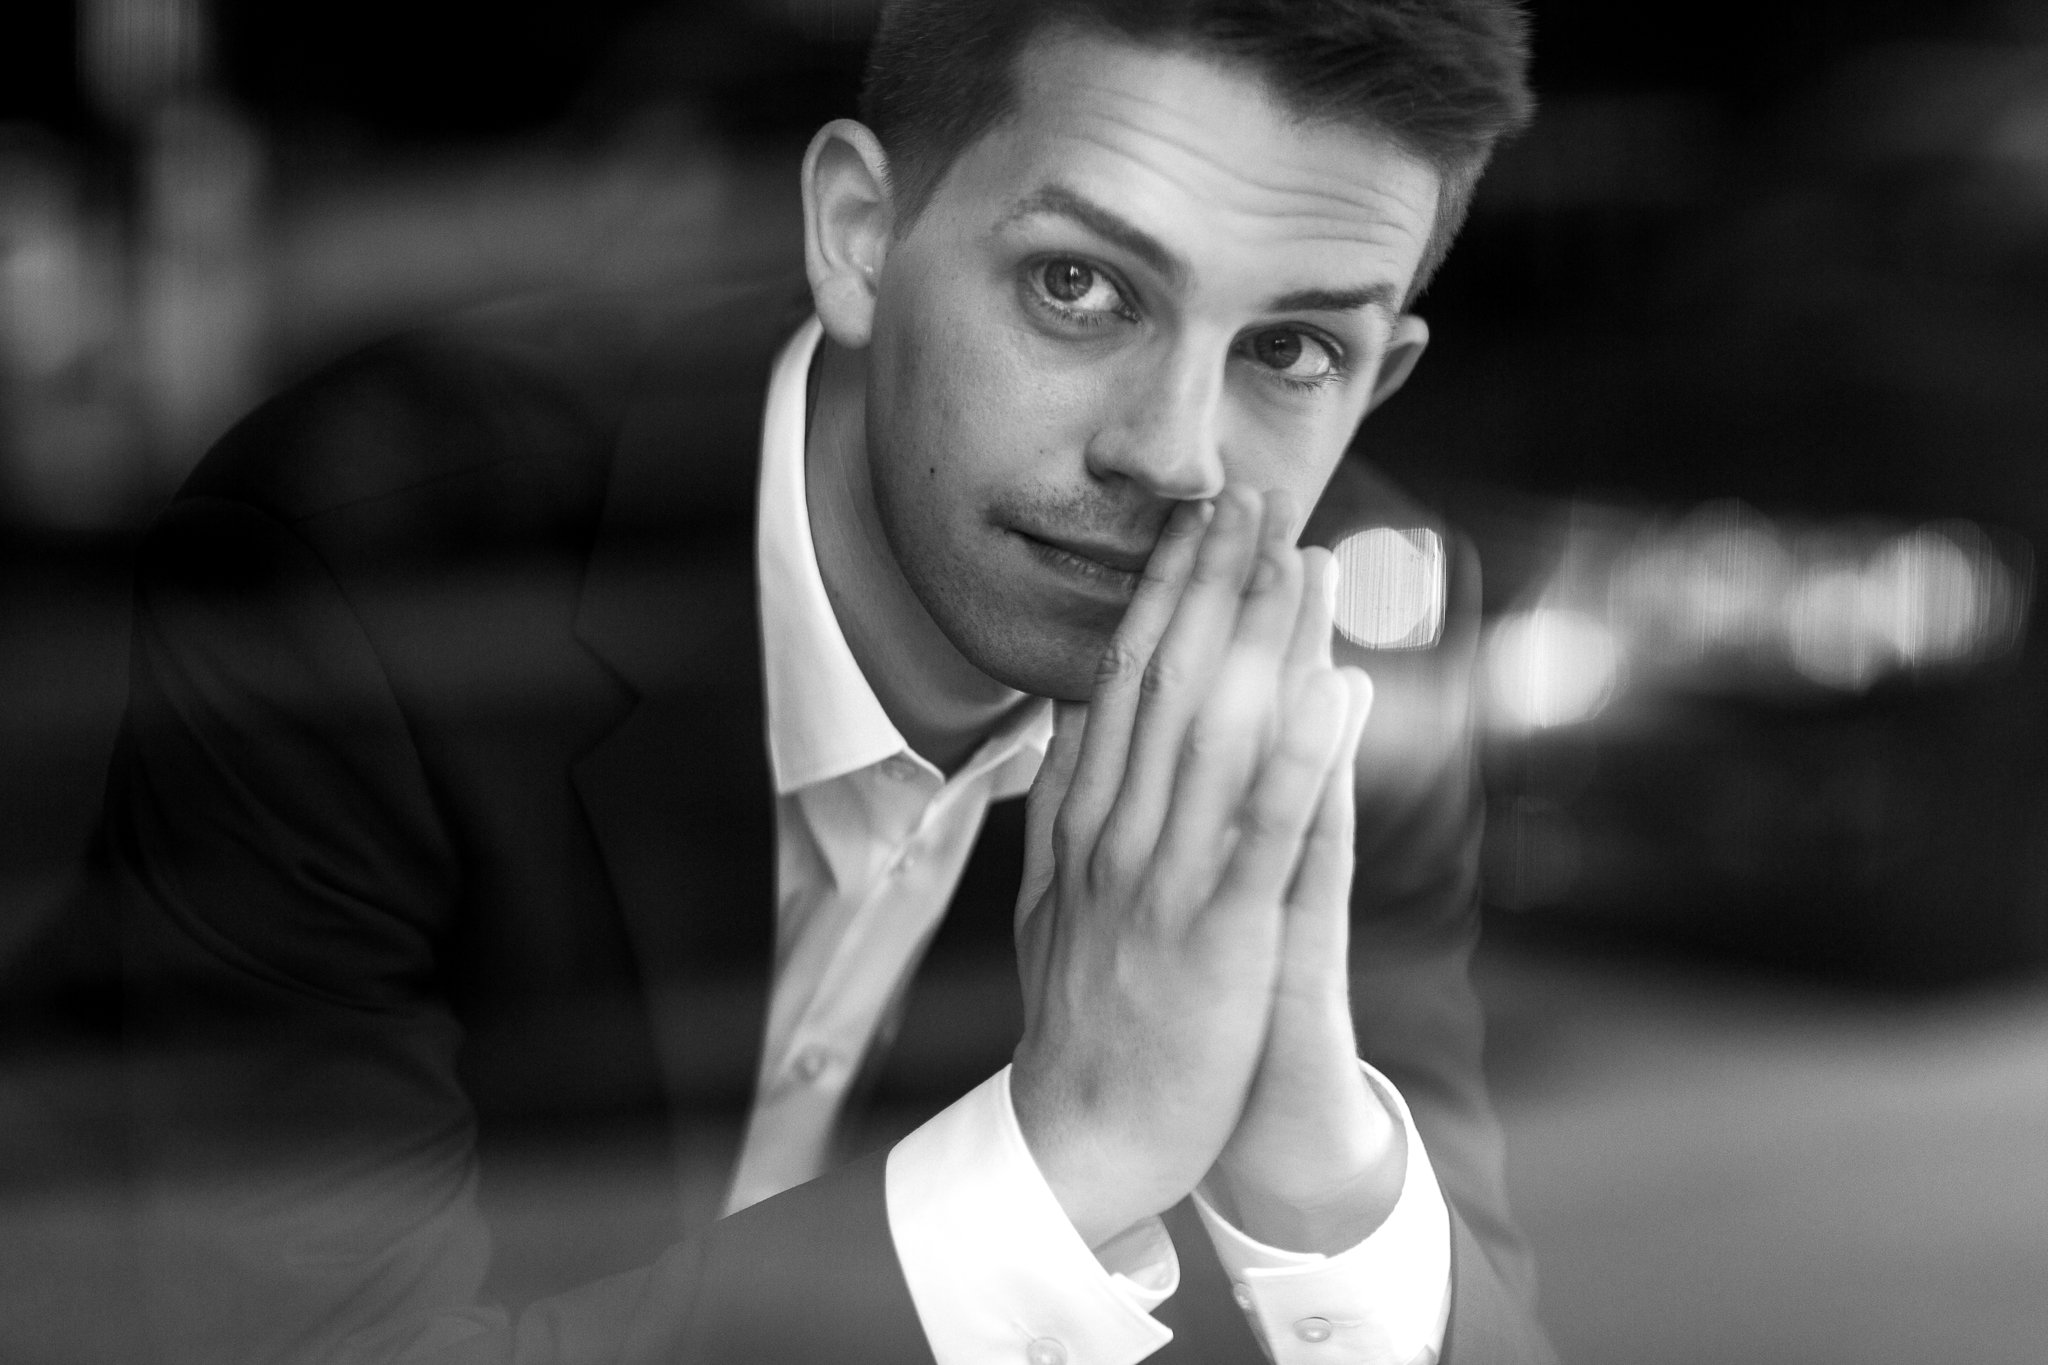 """Pianist Pawel Markowicz: Philip Glass' Music as an """"Exciting Mystery"""""""